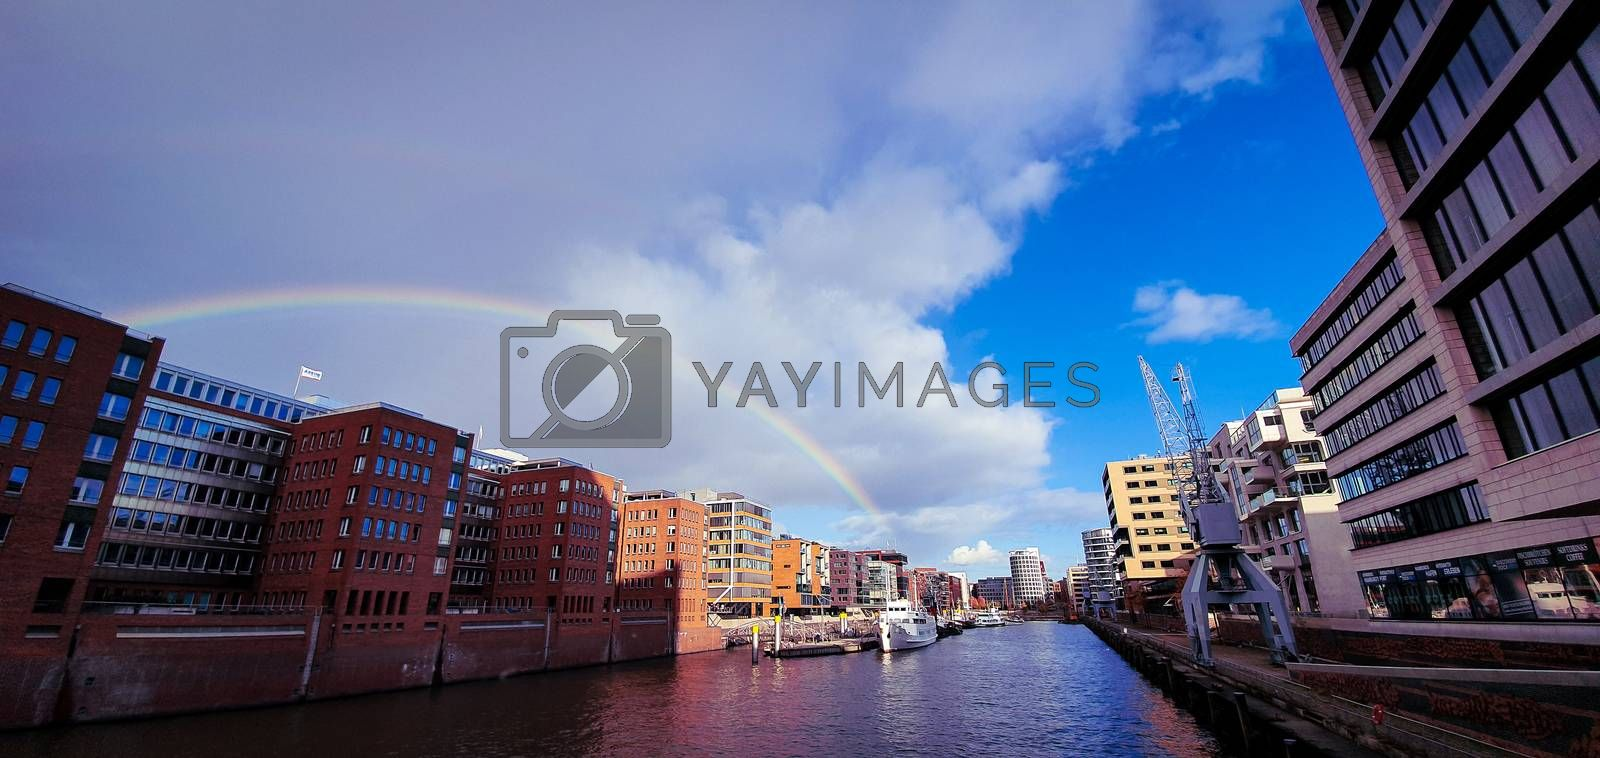 Beautiful rainbow over Hamburg canal. Beautiful wide angle view from the Kaiserkai bridge on the water canal at the Speicherstadt warehouse district near the Elbphilharmony concert hall. Buildings constructed with steel and brick.